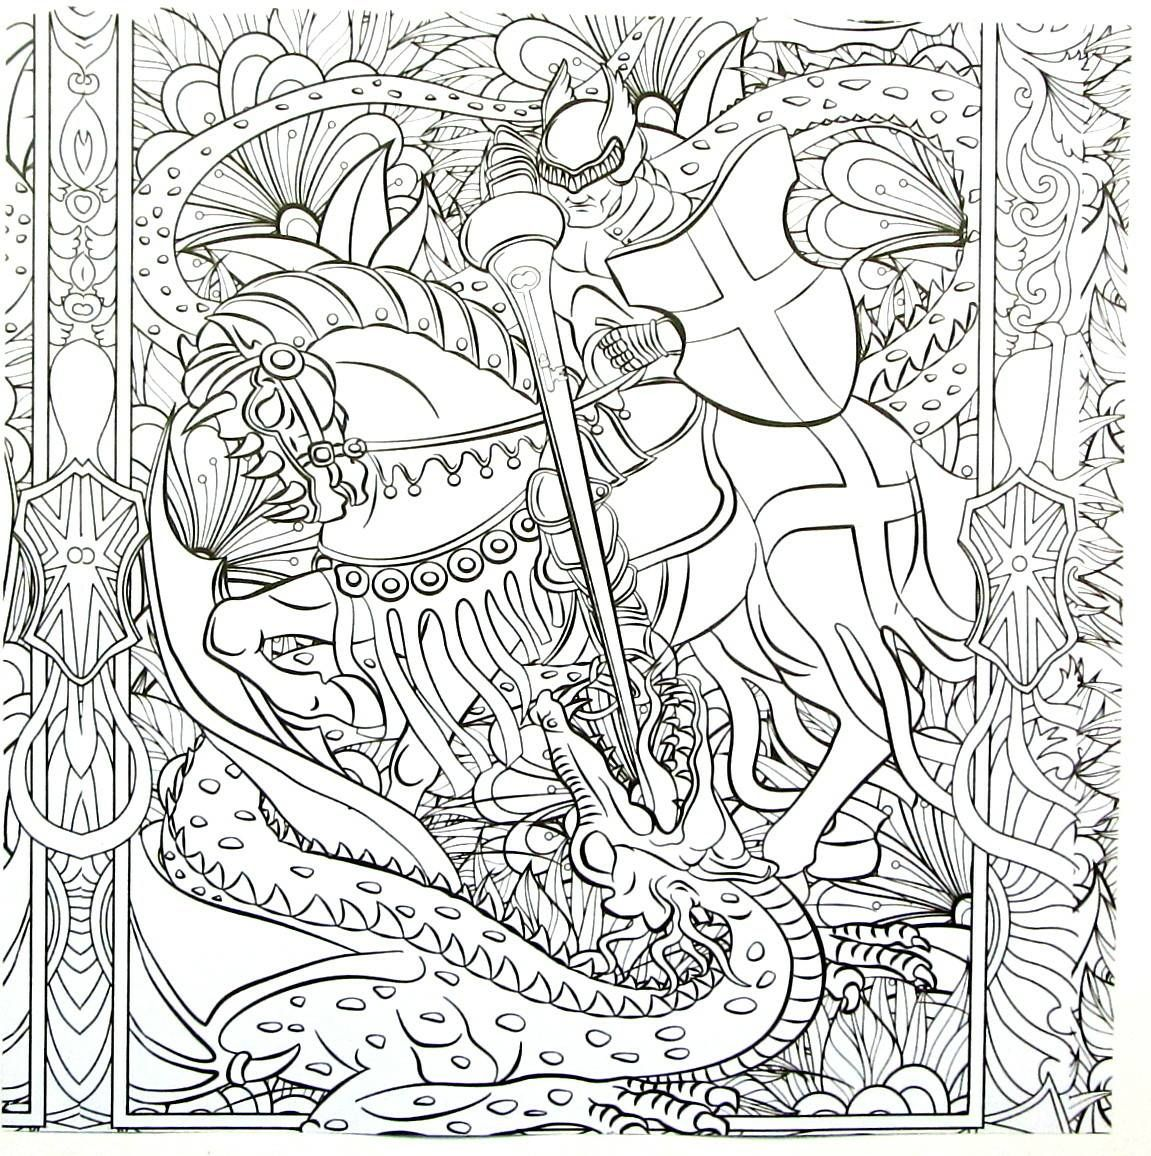 Knight On Horseback Fighting Dragon Detailed Coloring Book Page For Adults Coloring Books Shark Coloring Pages Free Halloween Coloring Pages